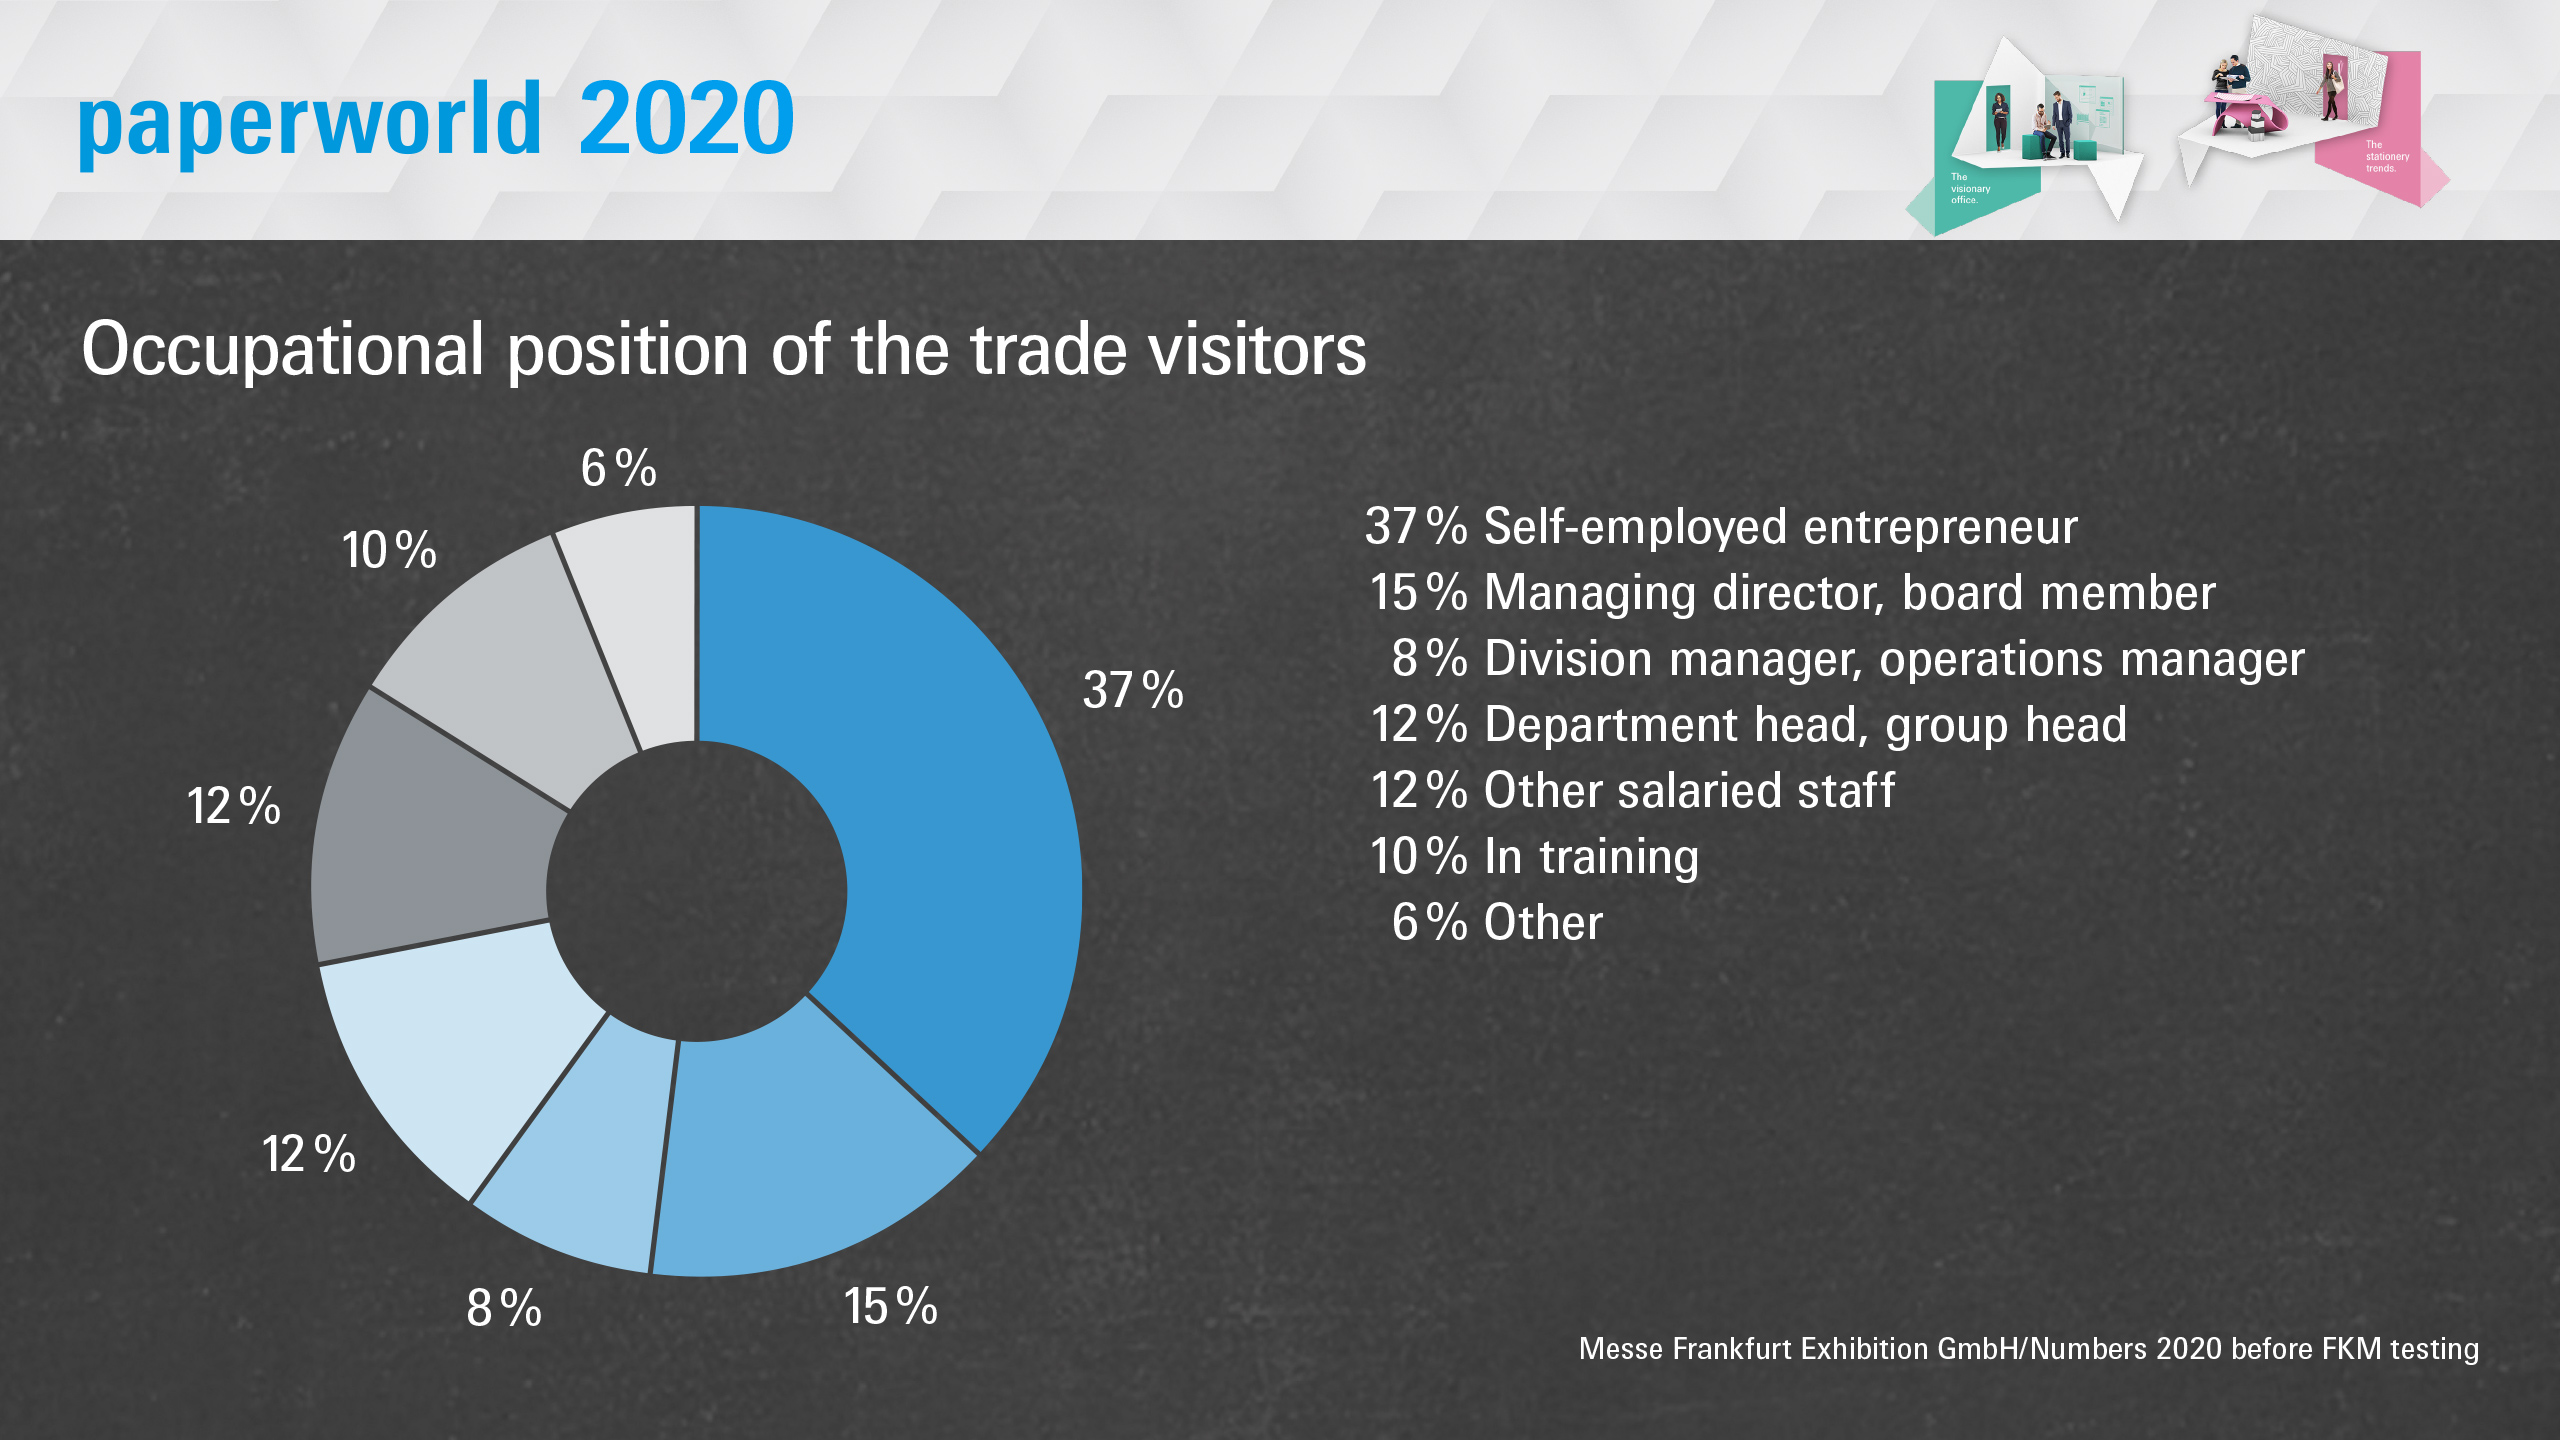 Paperworld 2020: Occupational position of the trade visitors